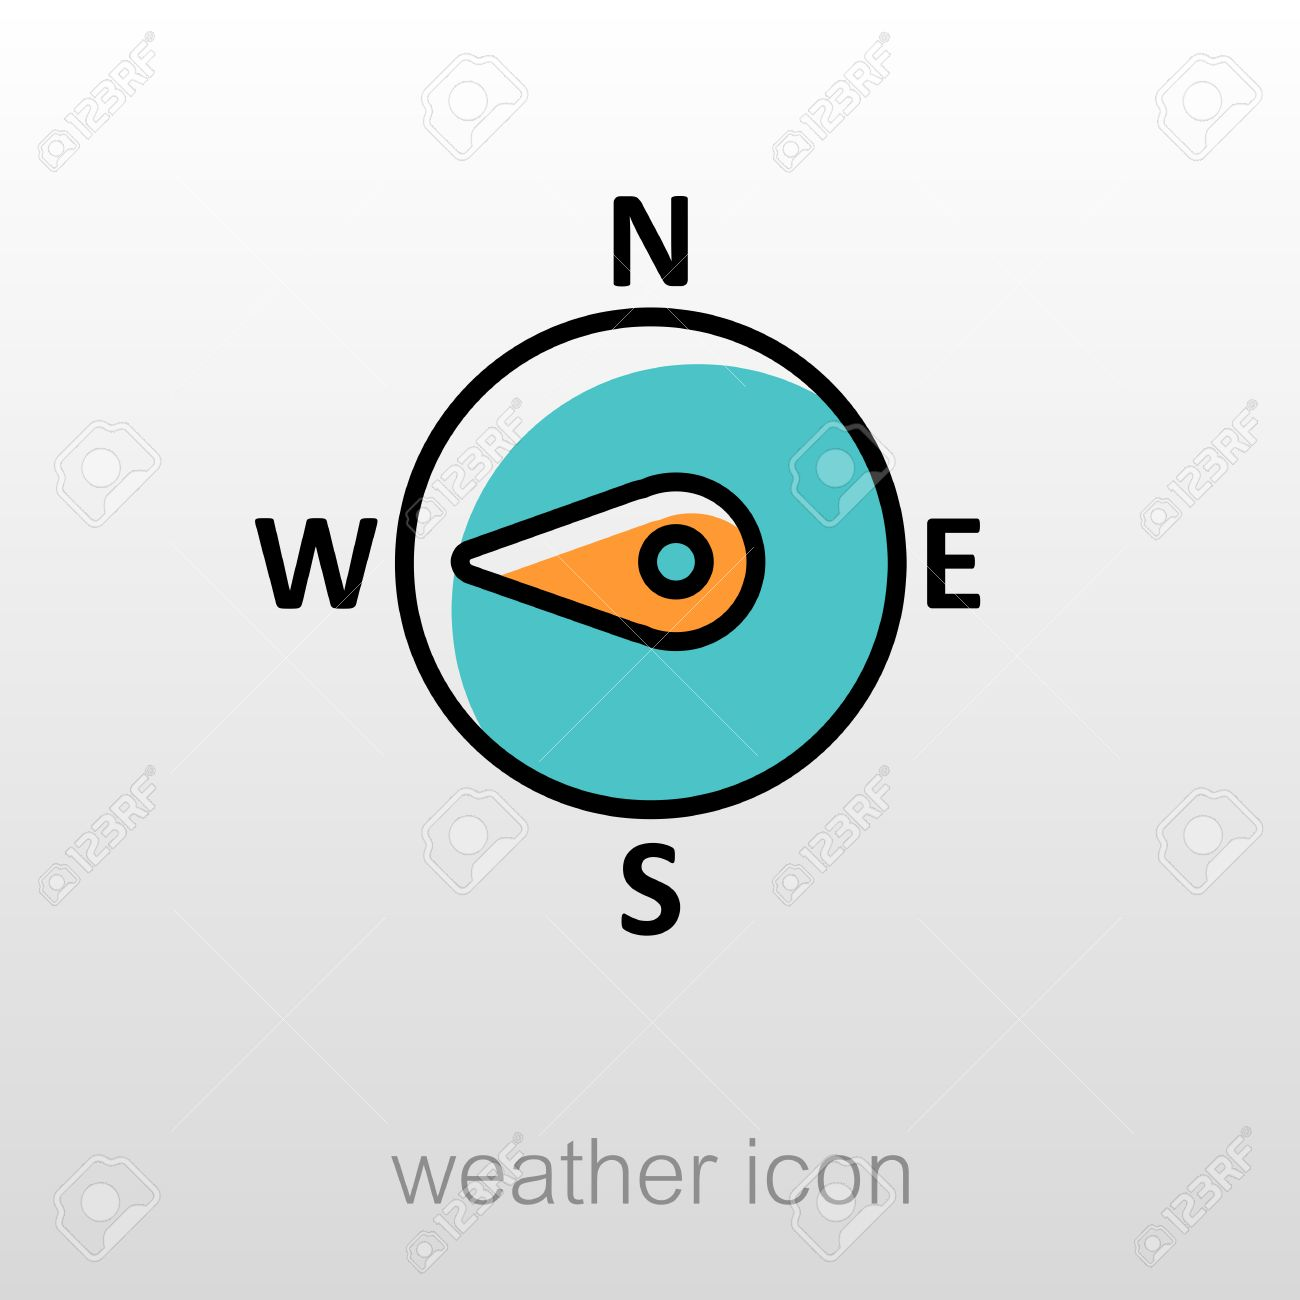 Compass clipart west Outline Compass West outline Wind